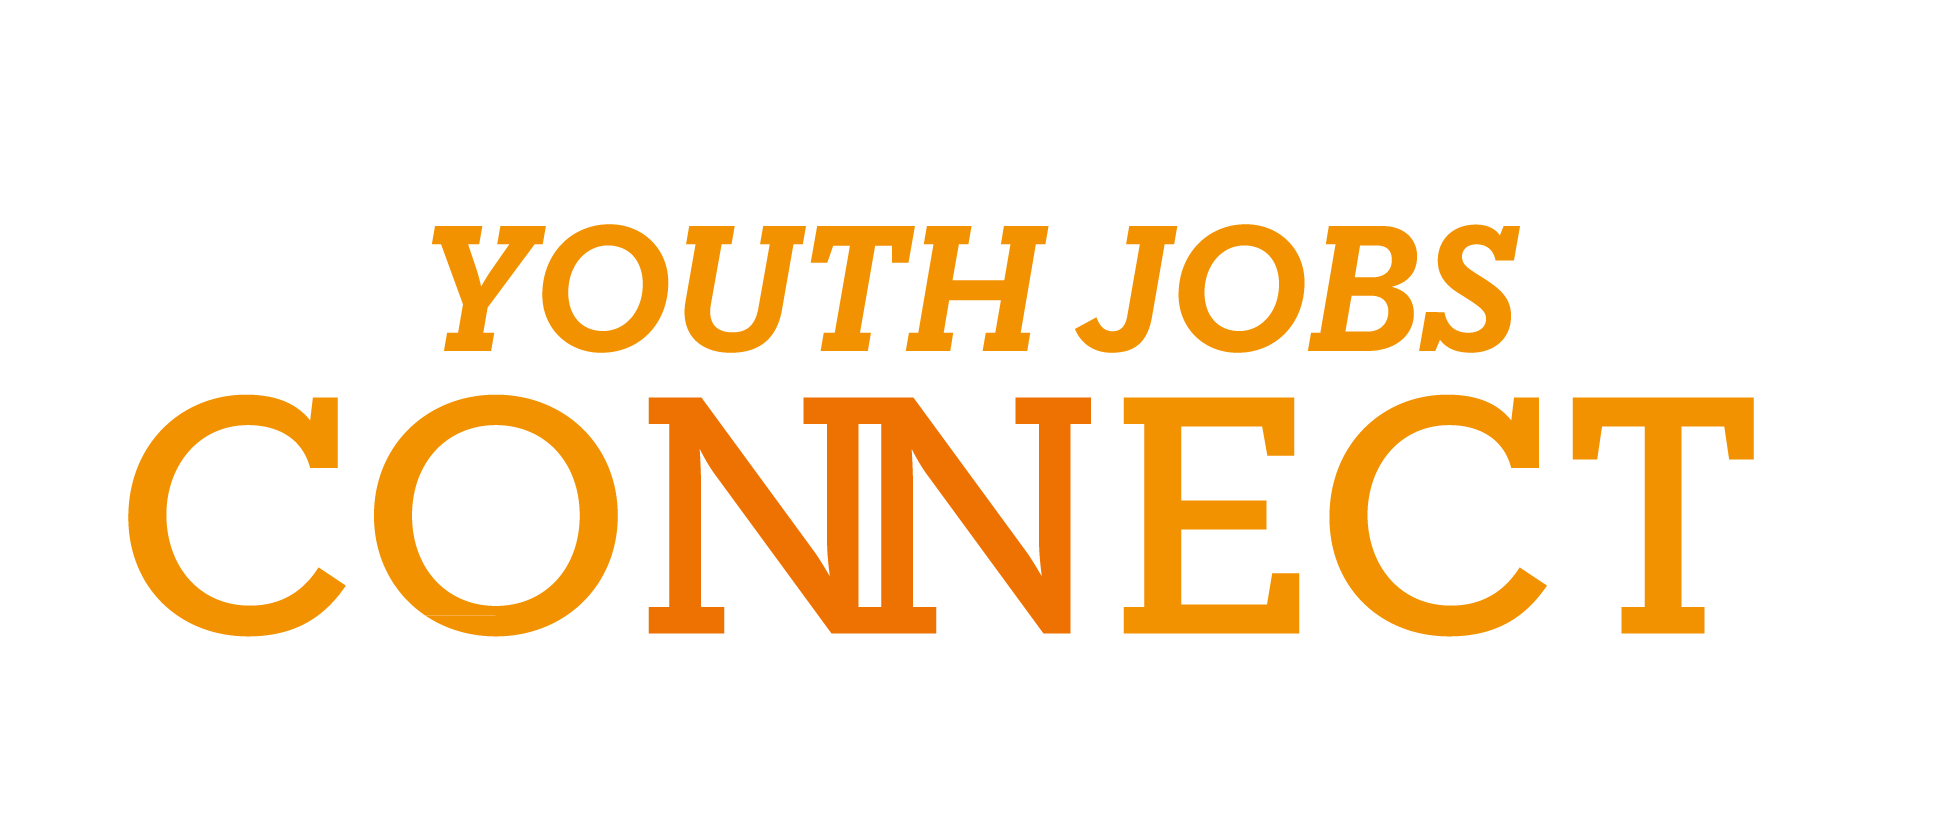 youth_jobs_connect_logo.png